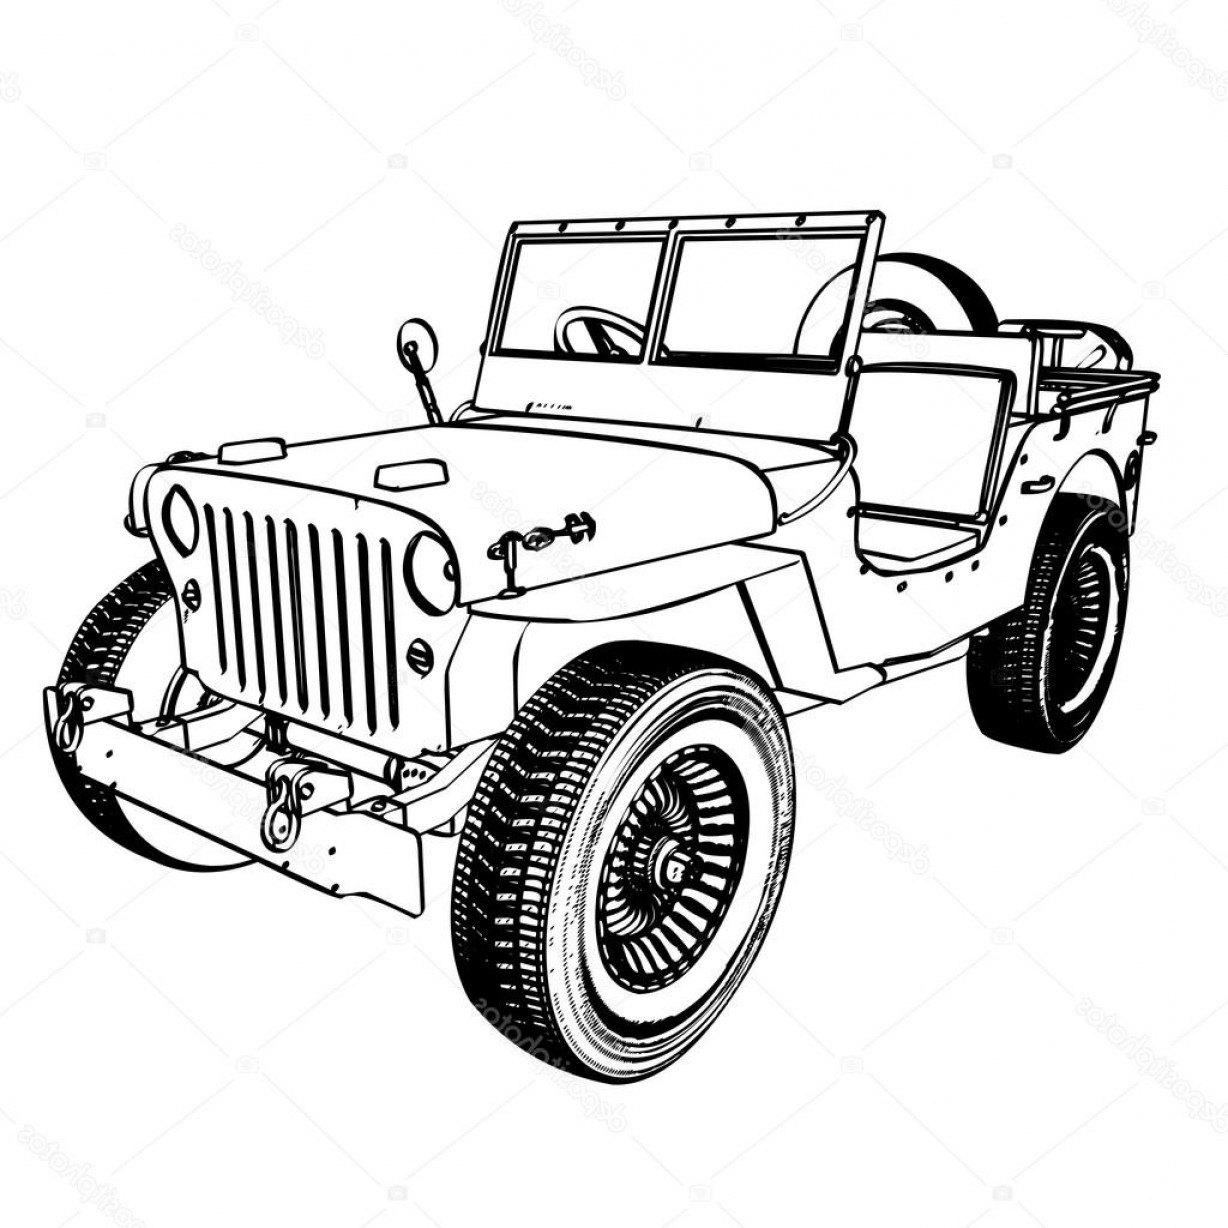 1228x1228 Jeep Vector Drawing Lazttweet